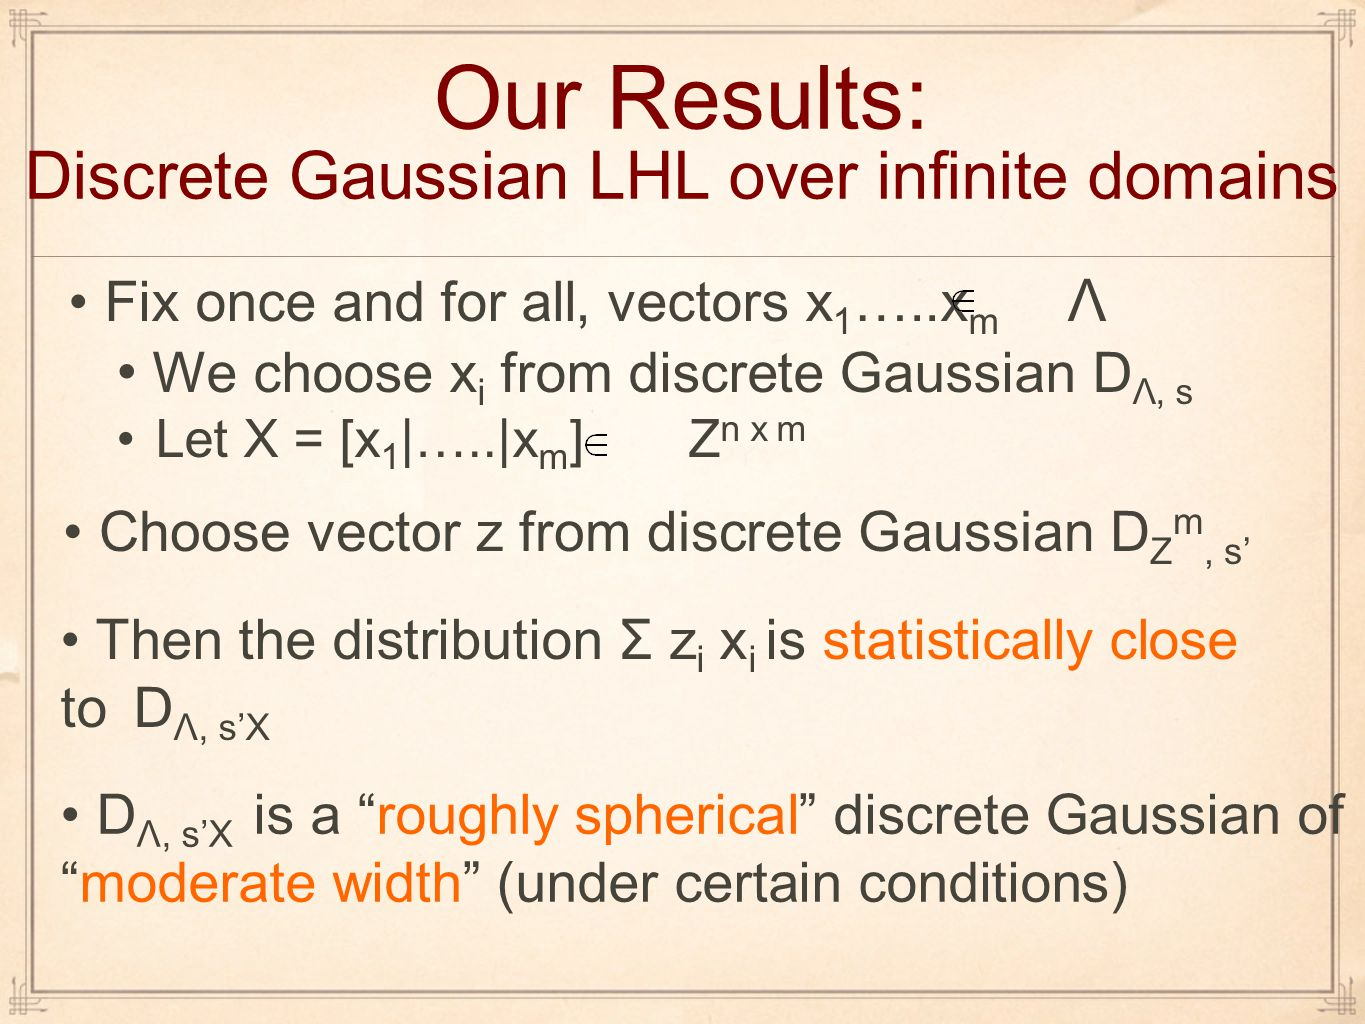 Our Results: Discrete Gaussian LHL over infinite domains Fix once and for all, vectors x 1 …..x m Λ We choose x i from discrete Gaussian D Λ, s Let X = [x 1 |…..|x m ] Z n x m Choose vector z from discrete Gaussian D Z m, s' Then the distribution Σ z i x i is statistically close to D Λ, s'X D Λ, s'X is a roughly spherical discrete Gaussian of moderate width (under certain conditions)